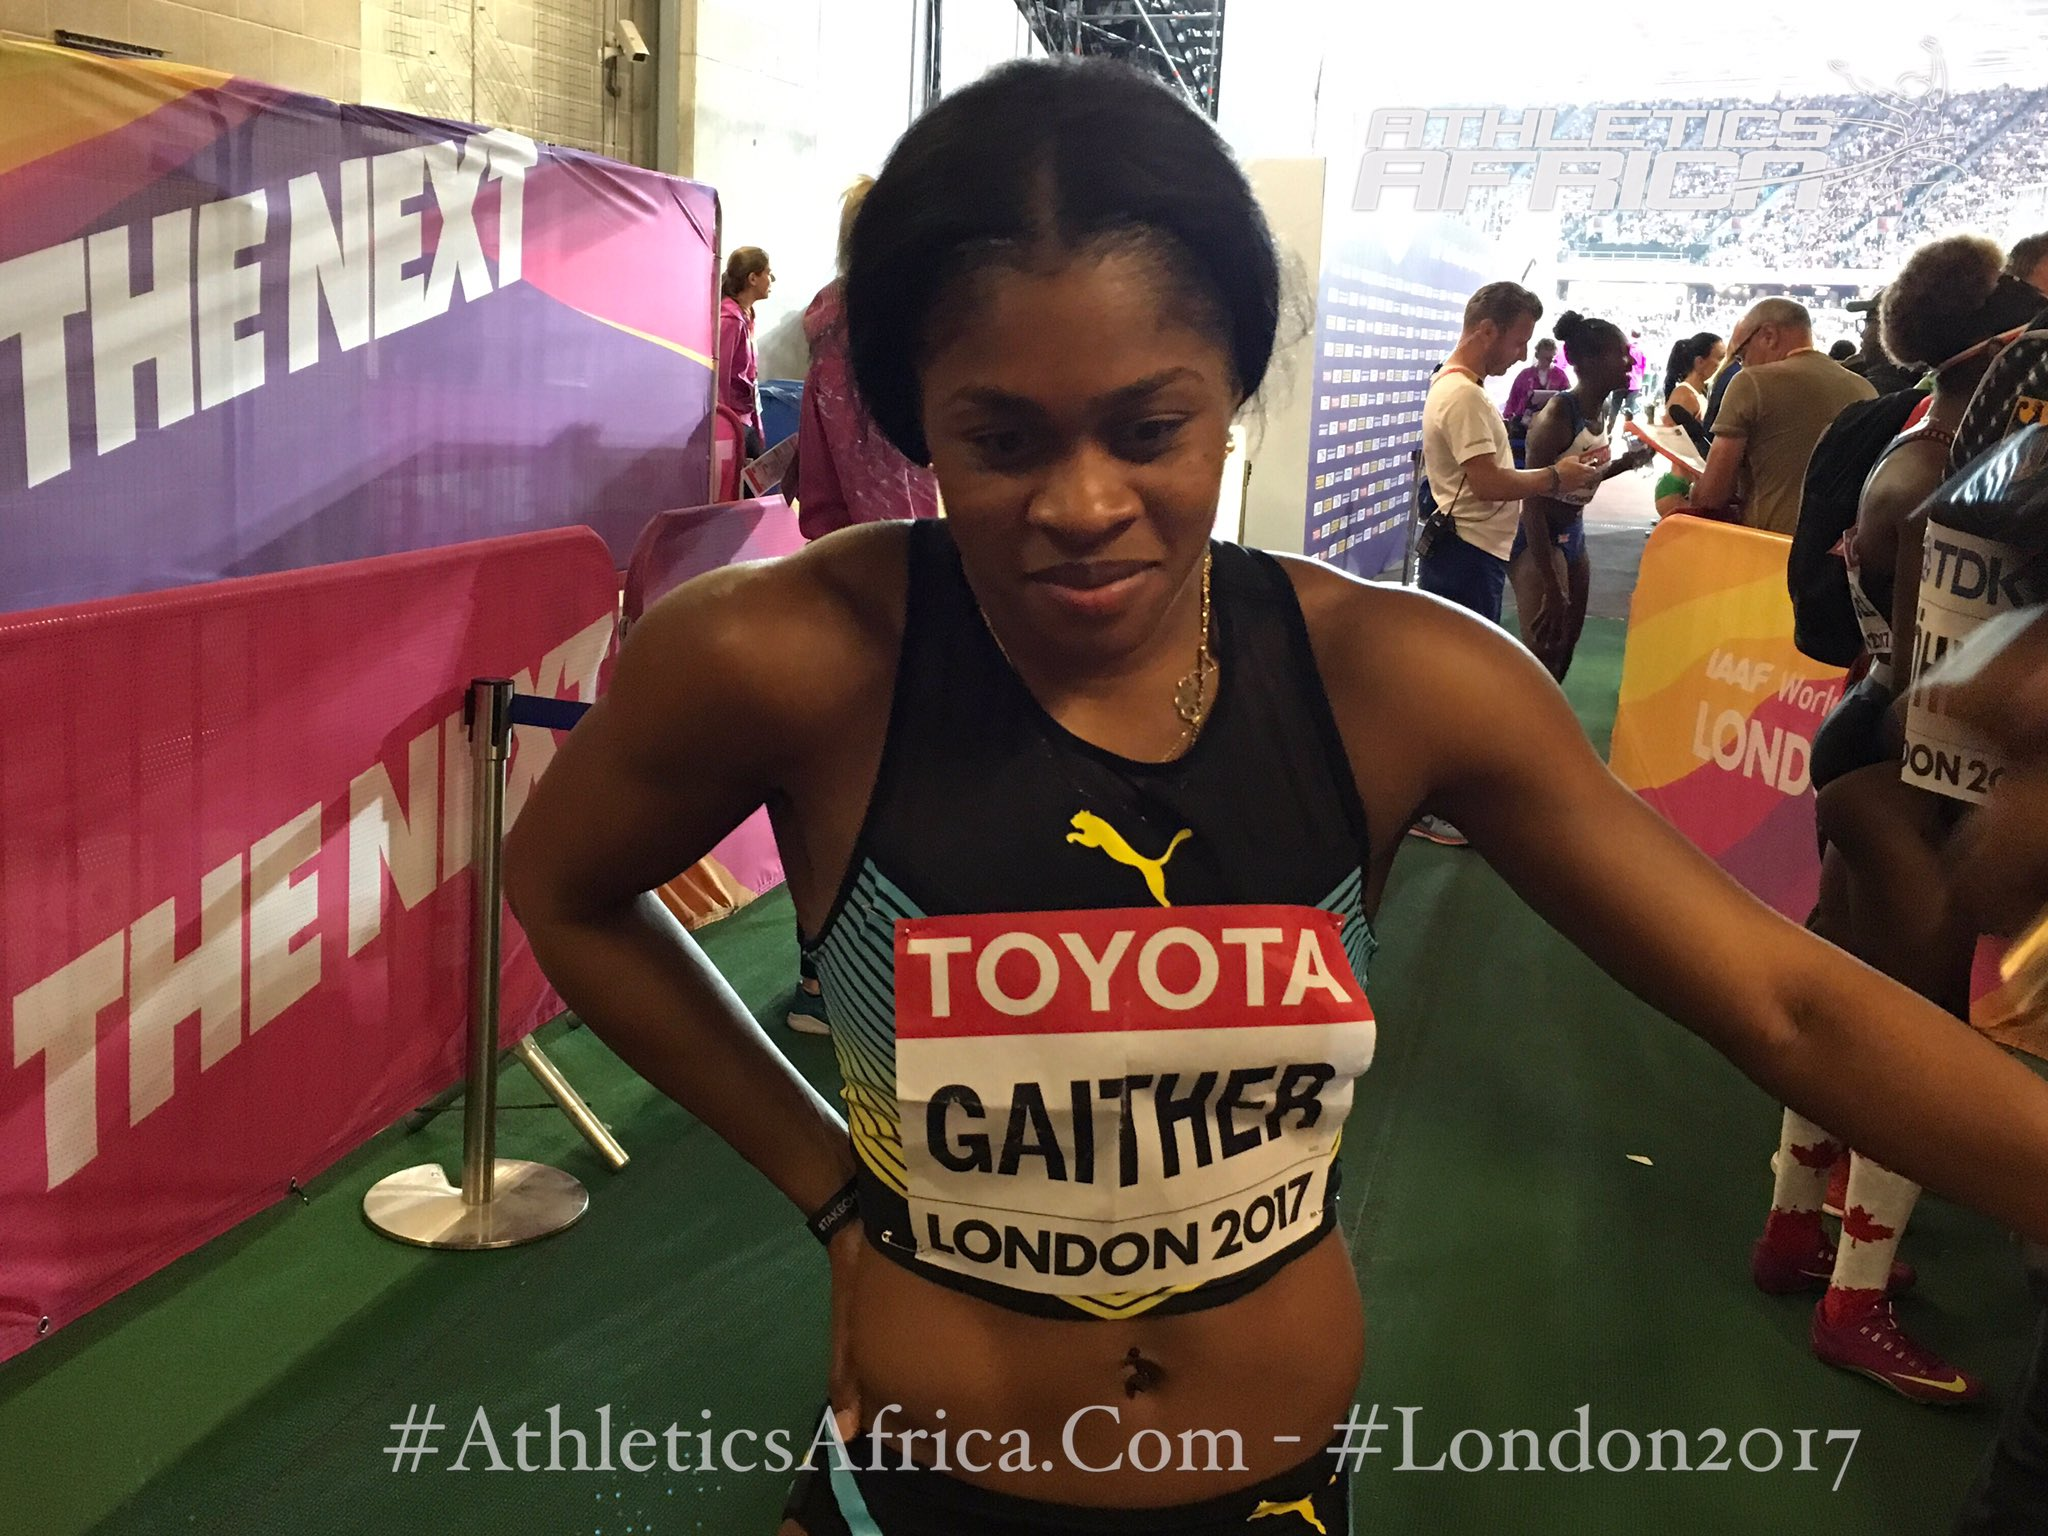 📸/ Tynia Gaither of the #Bahamas was the last qualifier for the women's 200m Final on Friday evening with 22.85. #London2017 #tyniagaither https://t.co/N9YunxZ1kB